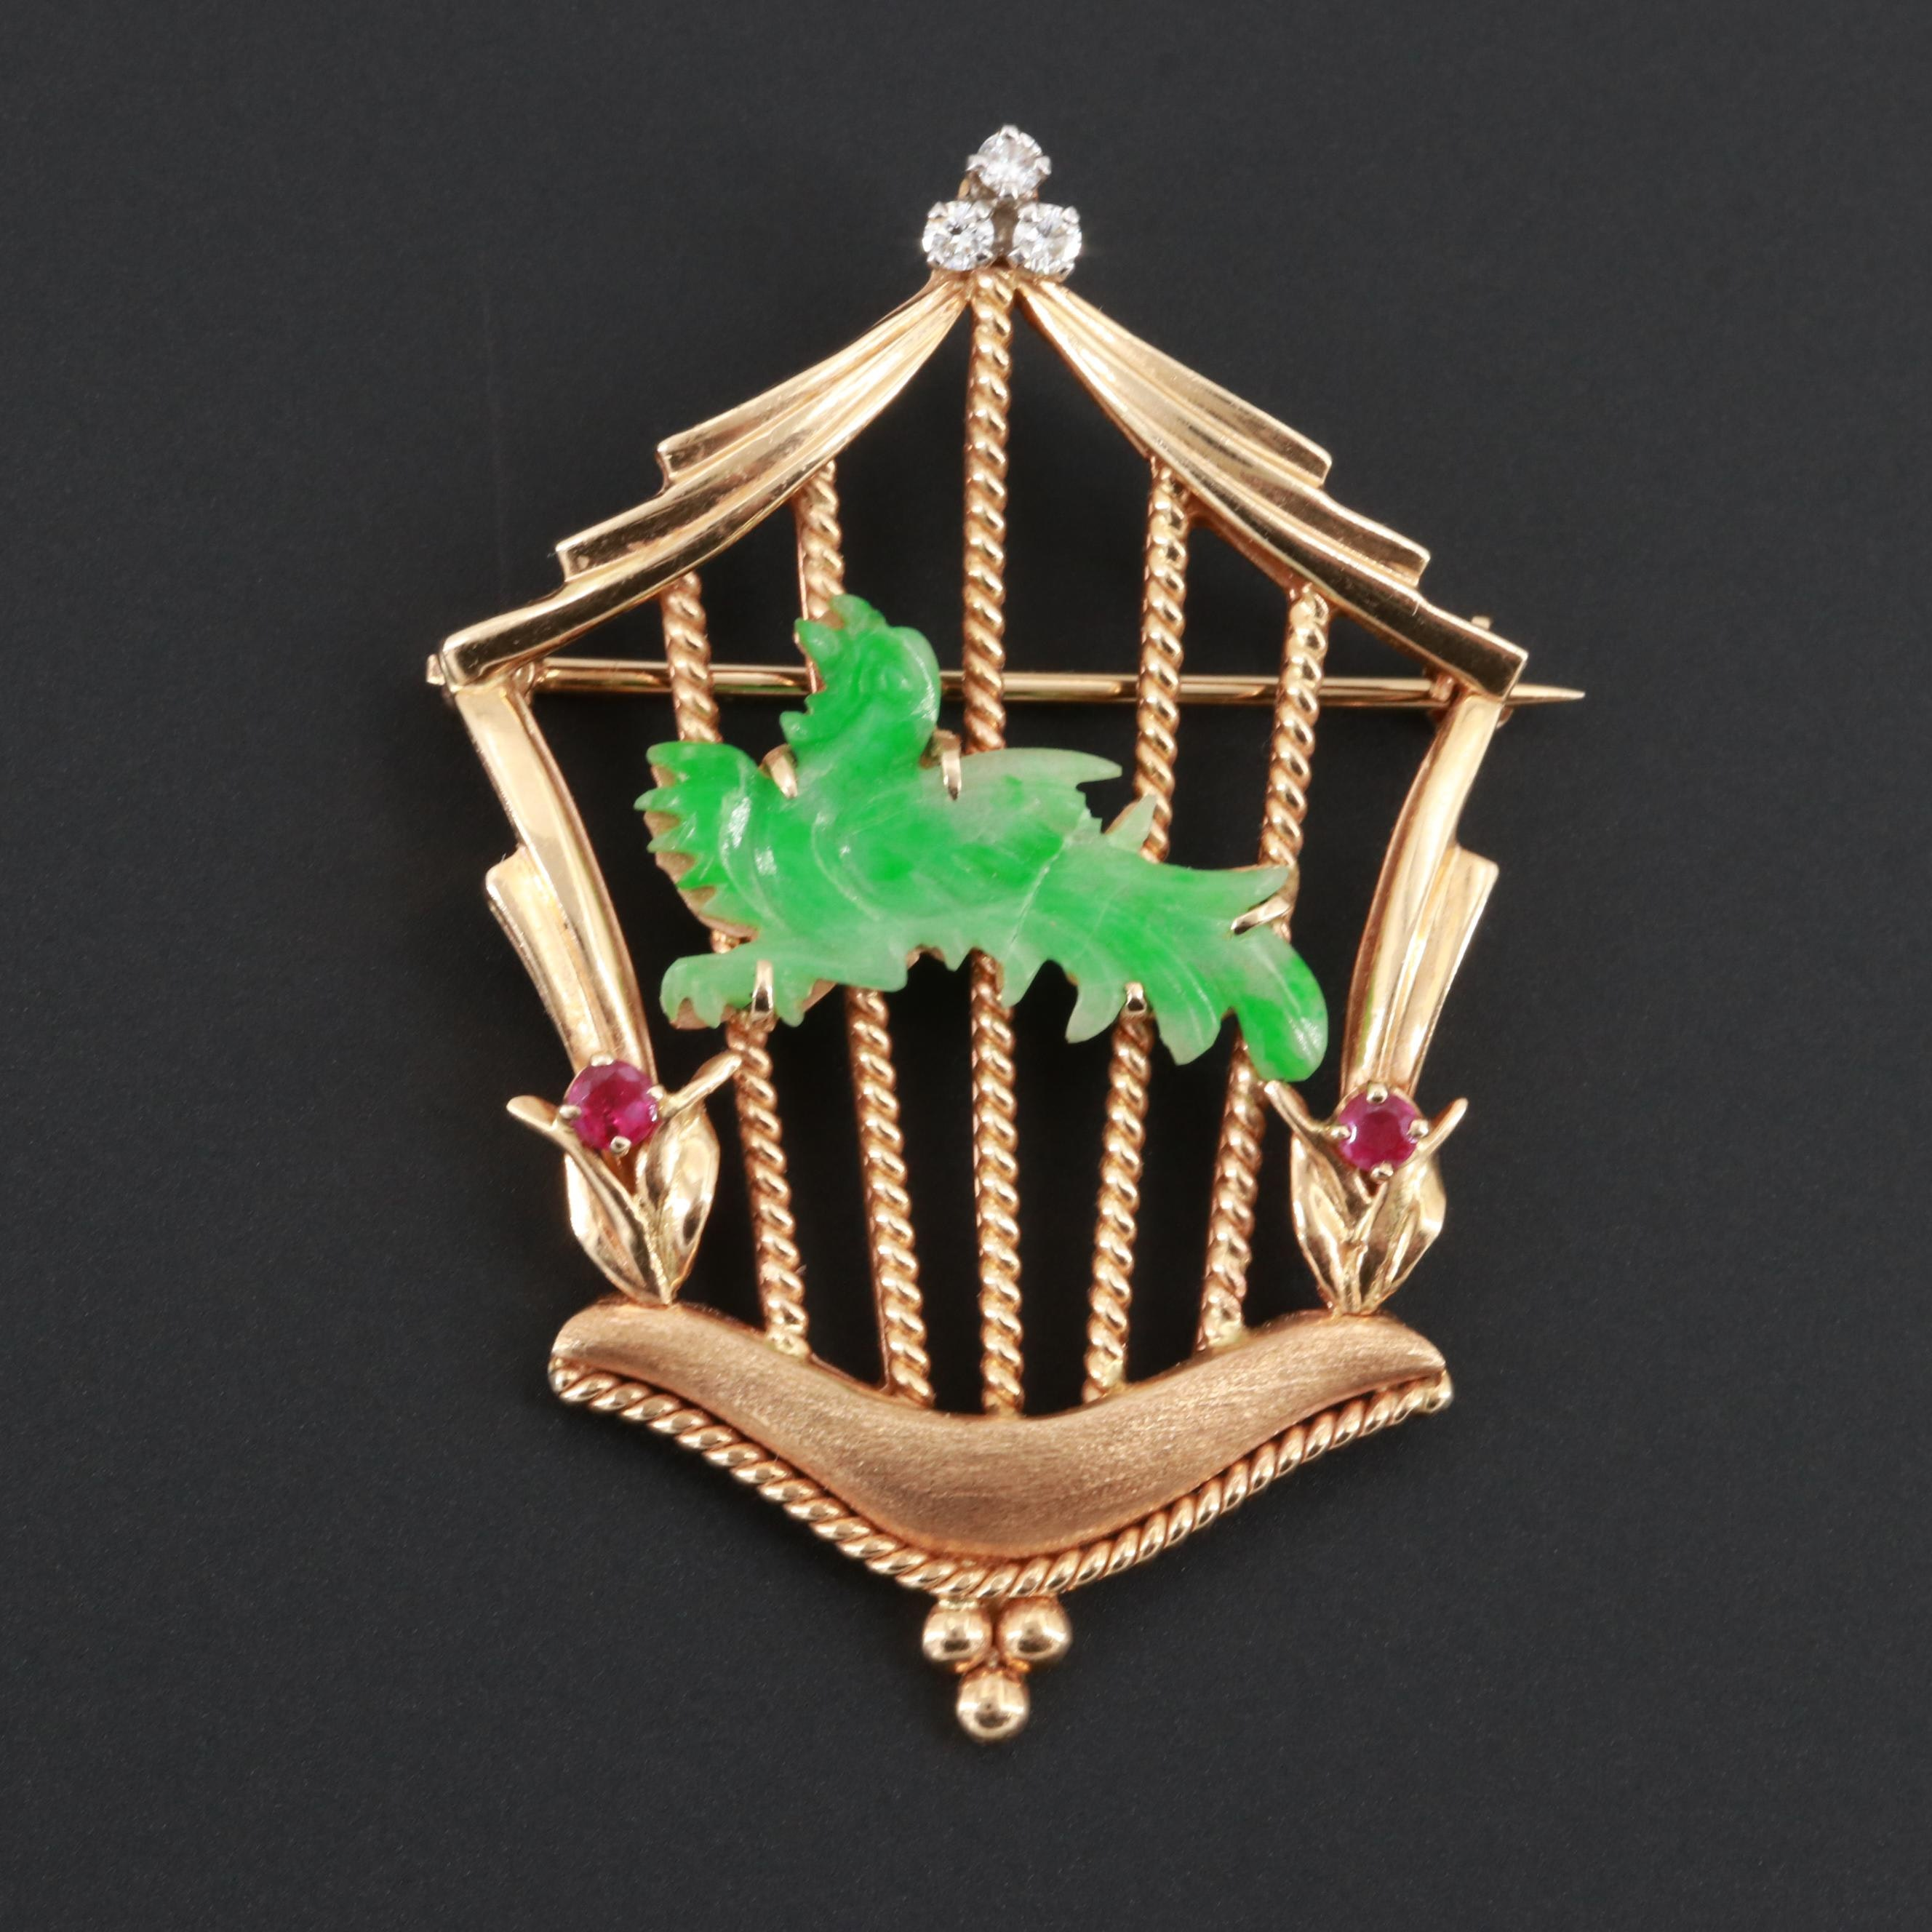 Vintage 14K Yellow Gold Jadeite, Ruby and Diamond Bird in Cage Brooch